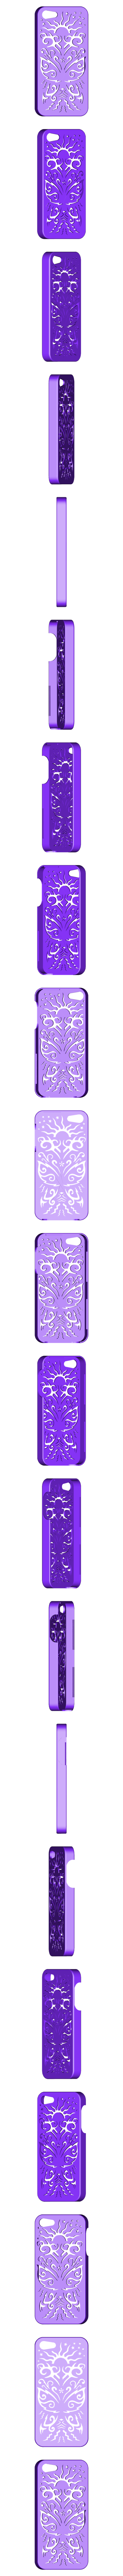 Butterfly Iphone Case 5 5s.stl Download STL file Butterfly Iphone Case 5 5s • 3D printer model, Custom3DPrinting